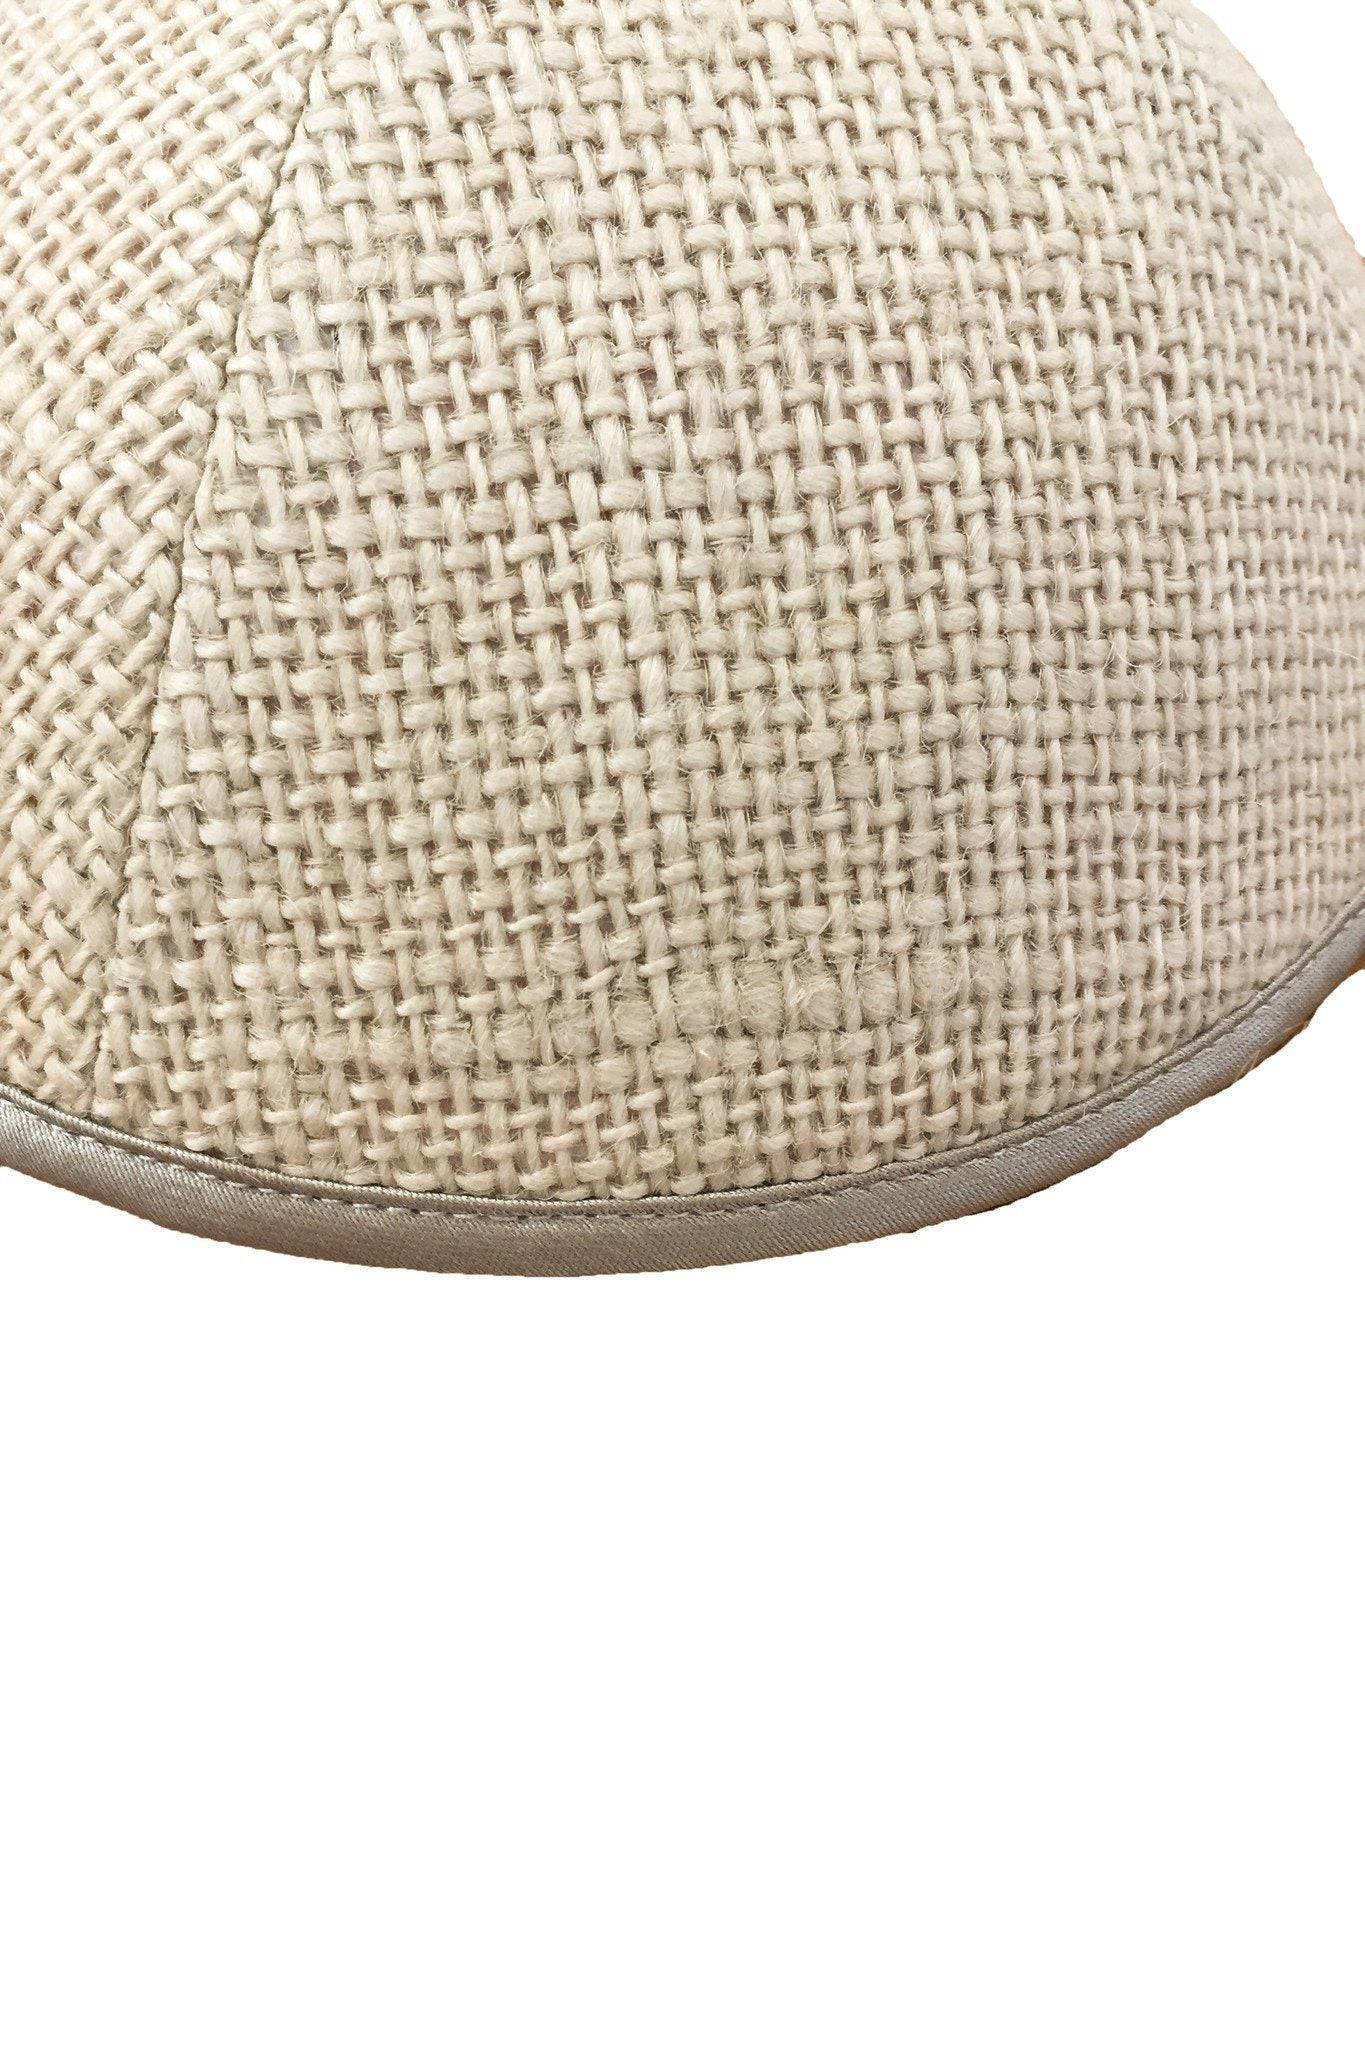 iKippah Size 5 - Tan Burlap - PROJECT 6, modest fashion